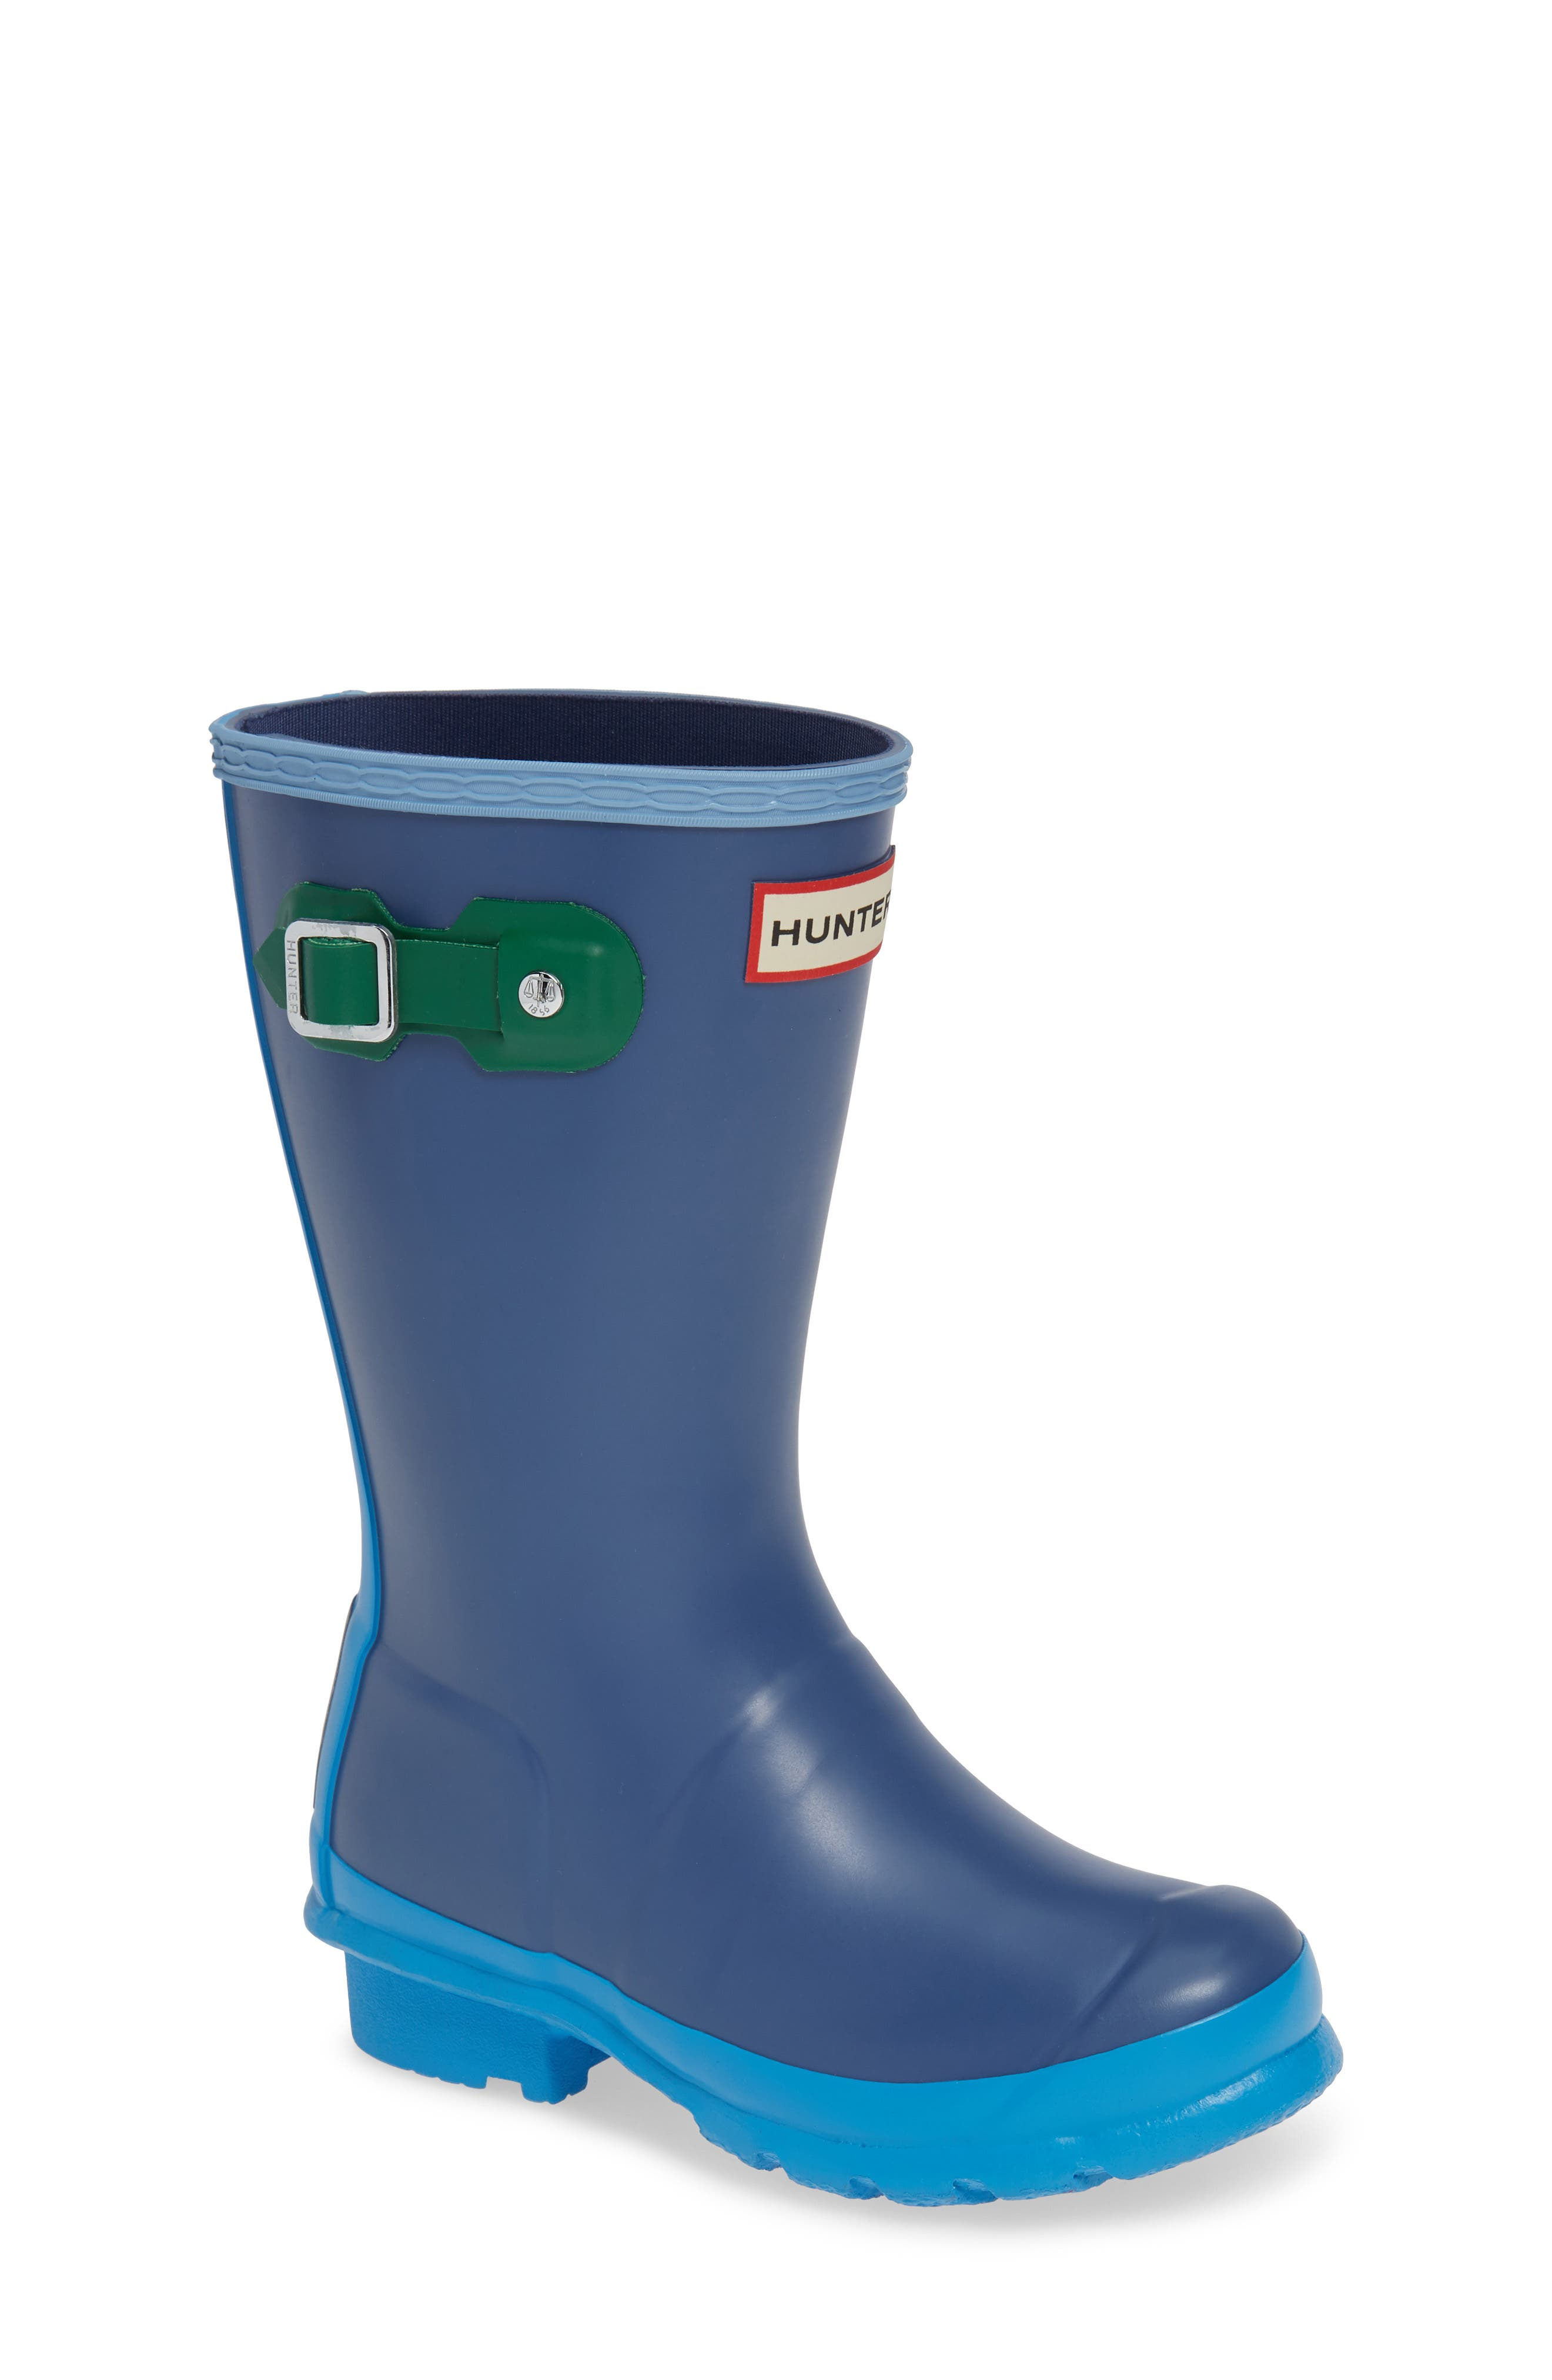 Original Colorblock Rain Boot,                         Main,                         color, PEAK BLUE COLORBLOCK